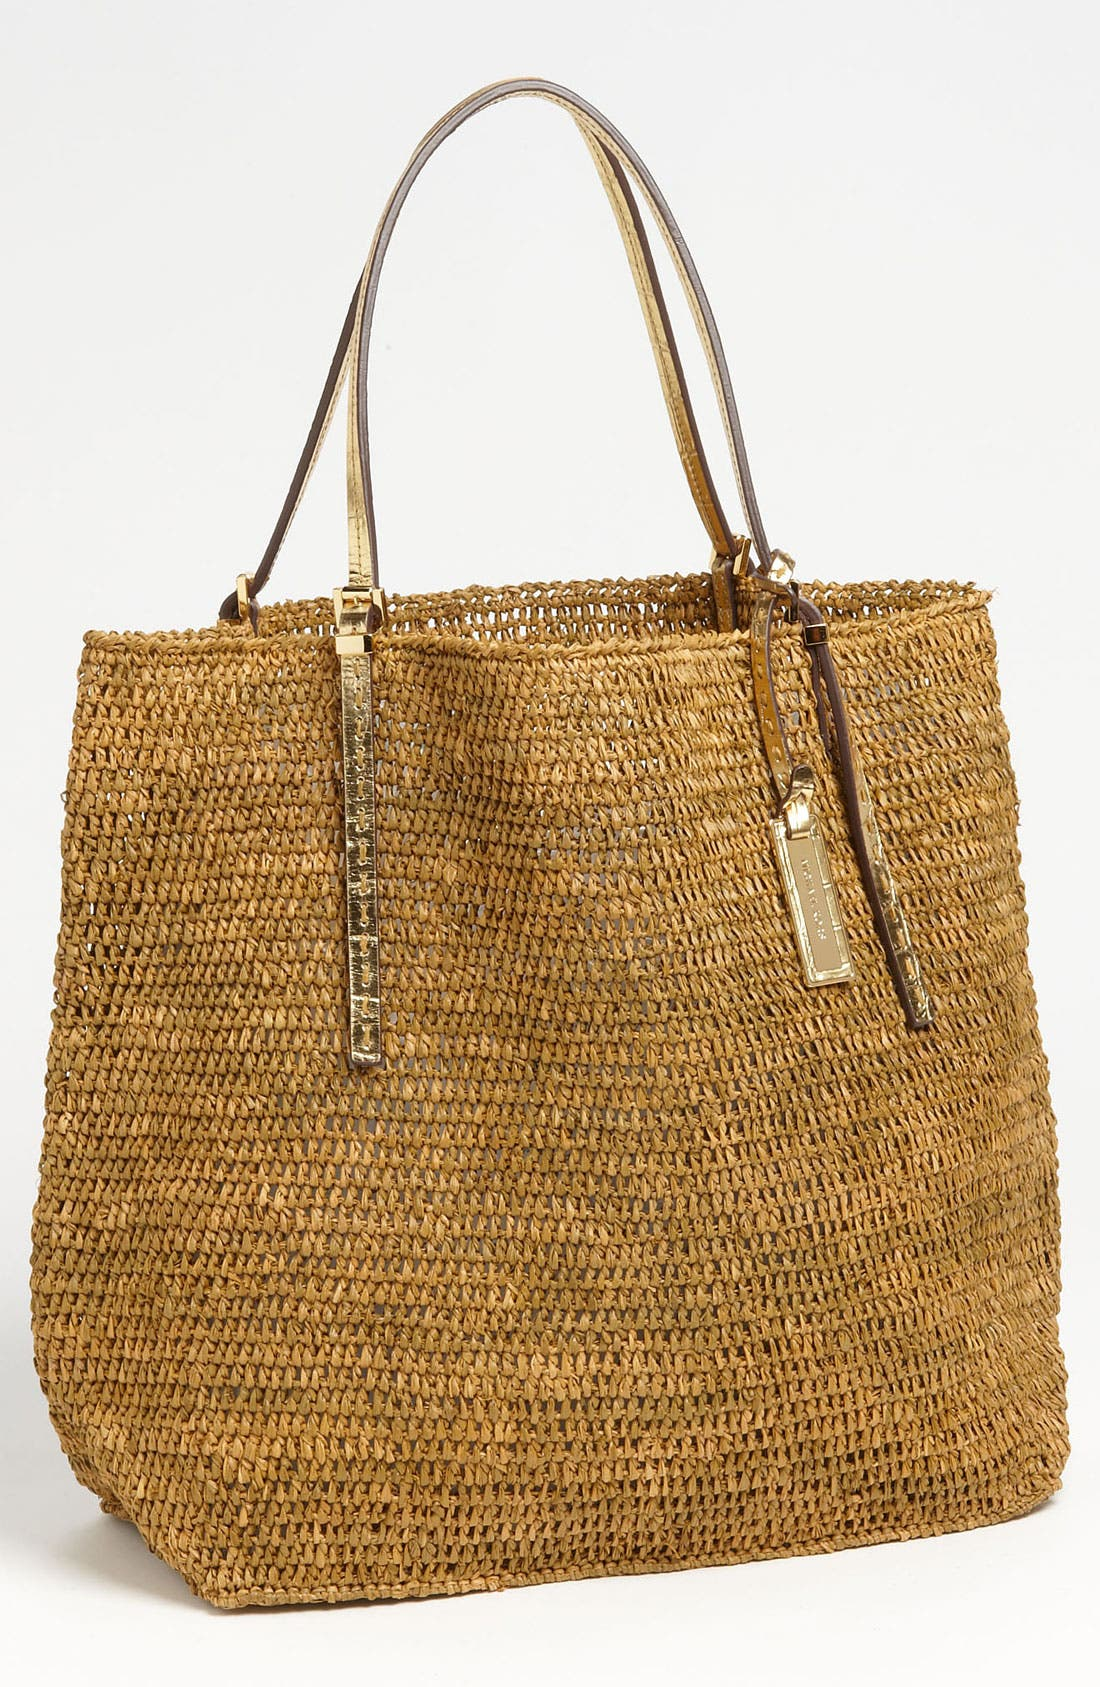 Alternate Image 1 Selected - Michael Kors 'Santorini' Tote